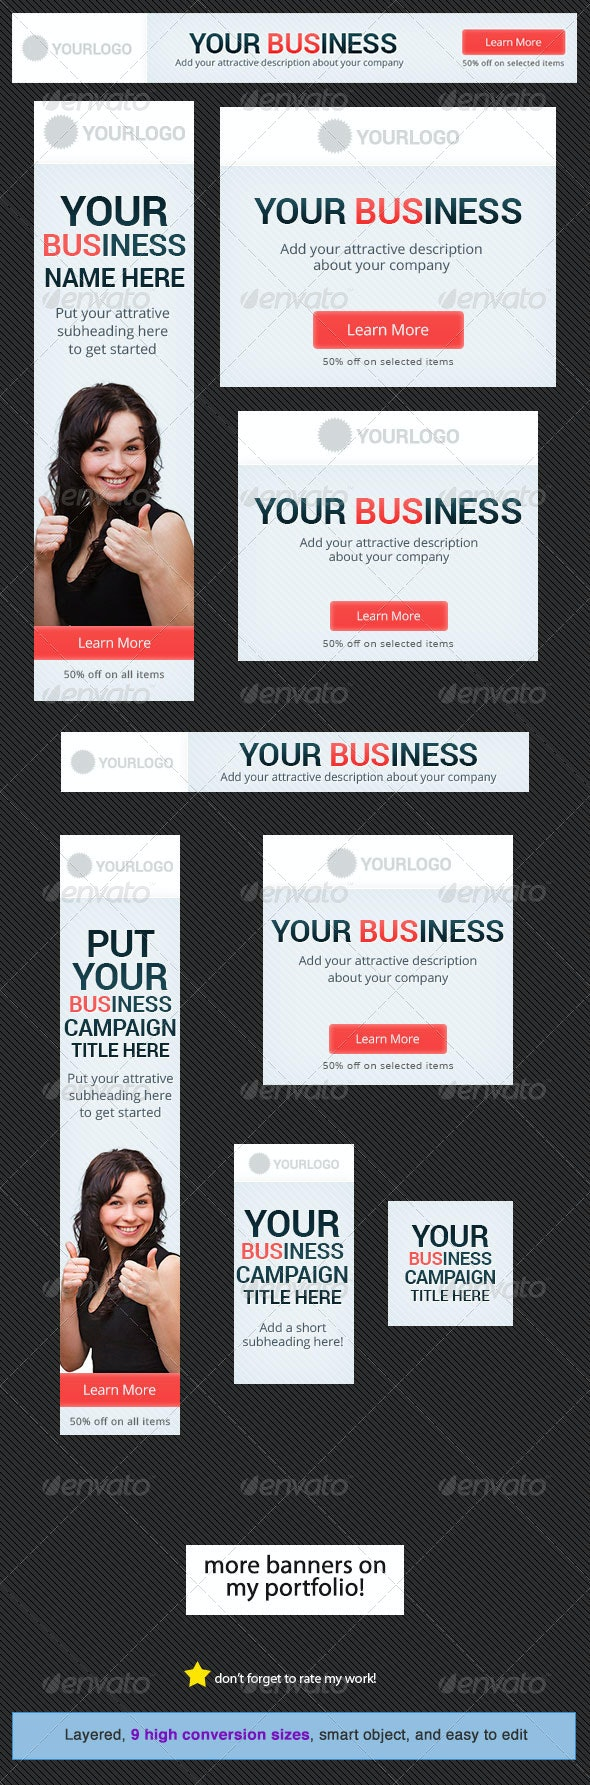 Business Banner Design Template 2 - Banners & Ads Web Elements